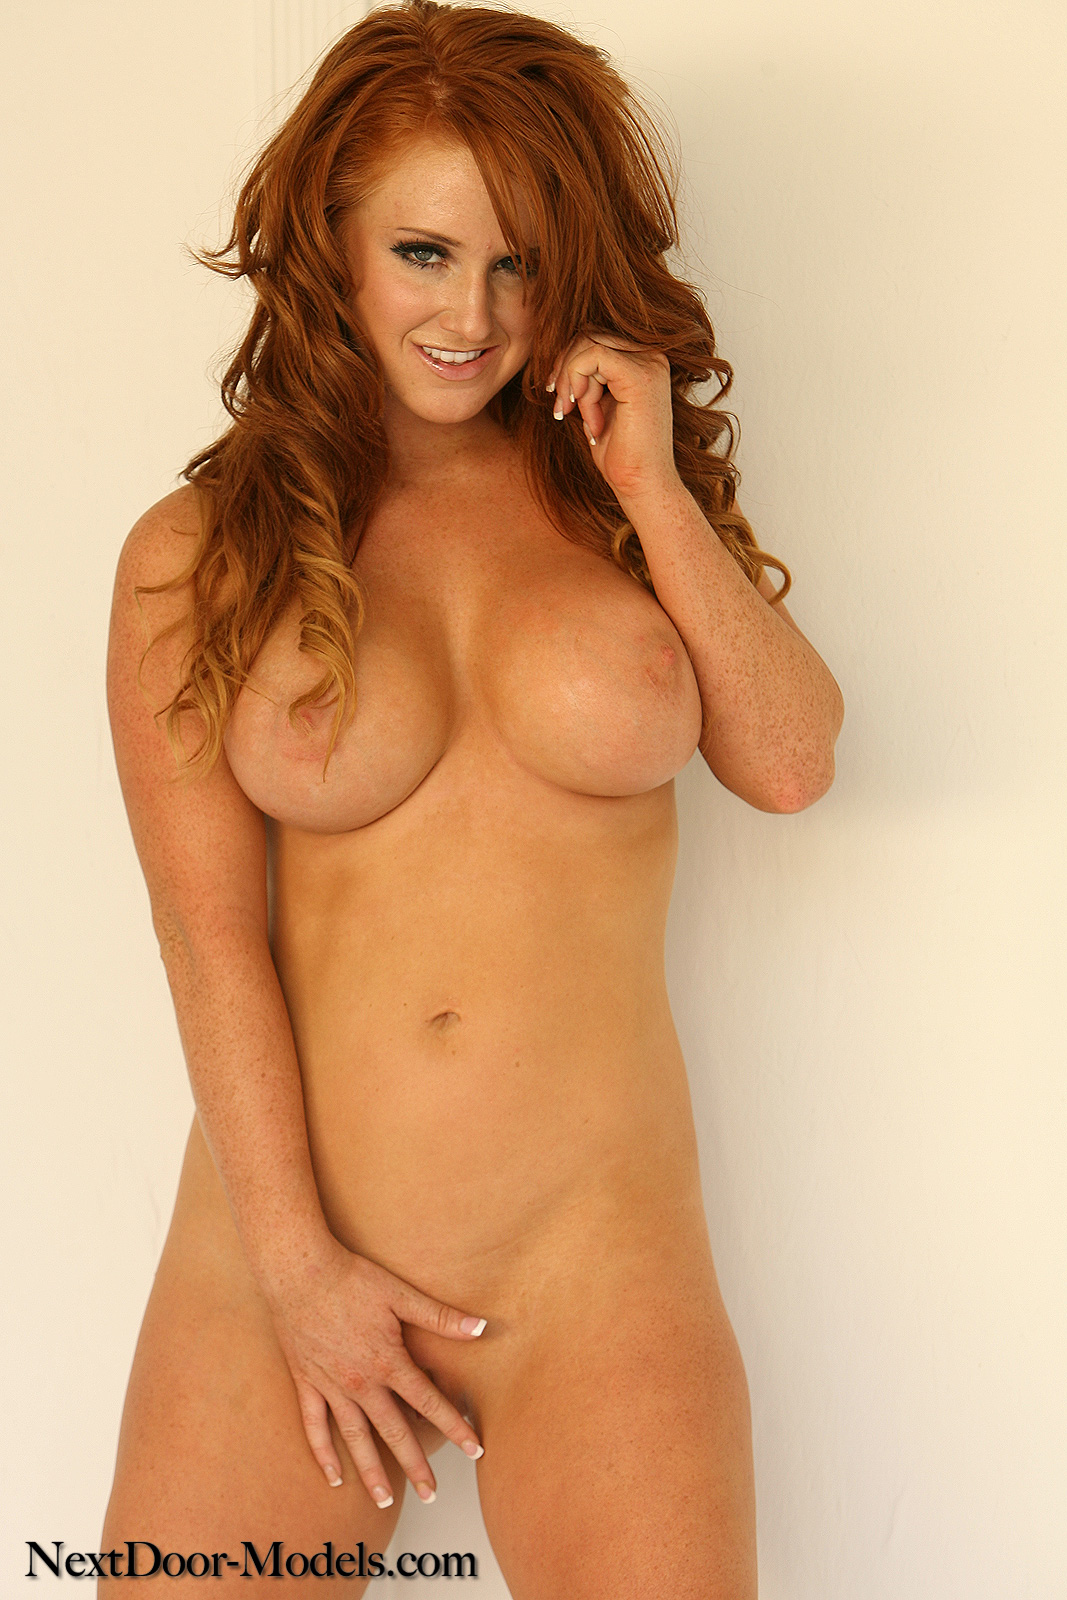 Spoke Redhead and busty her